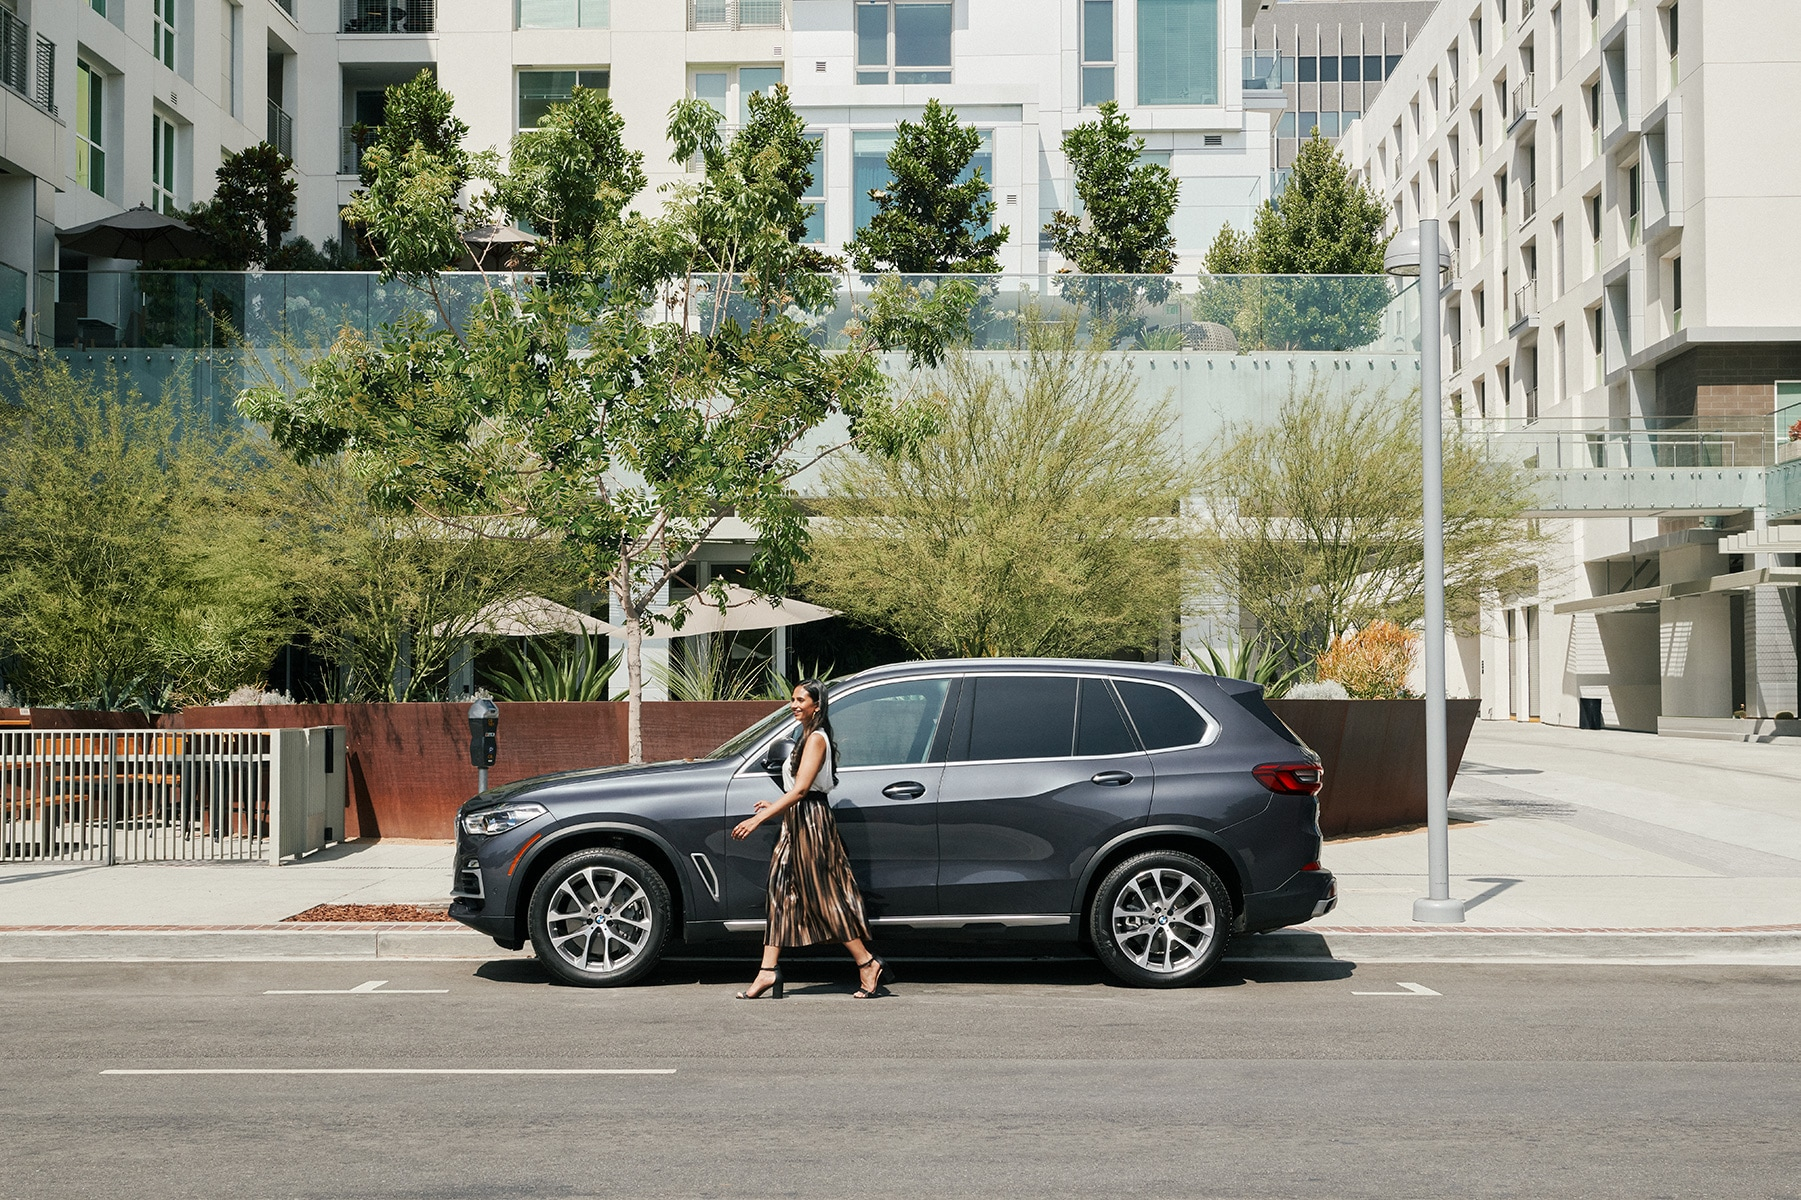 Shop from Home at BMW of Bel Air | 2021 BMW X5 parked outside of city building